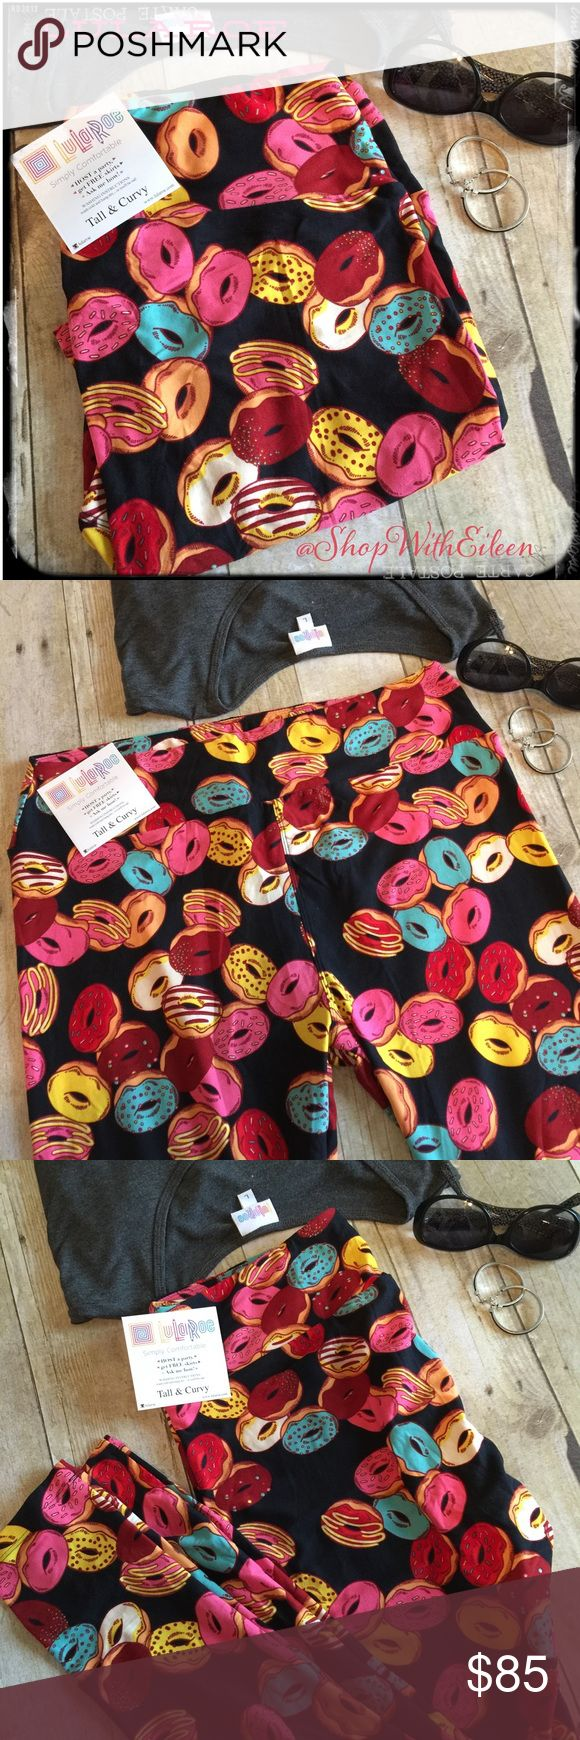 LulaRoe DONUTS DONUTS DONUTS Leggings TC   LulaRoe DONUTS DONUTS DONUTS Leggings TC ~ HUGE  These are great leggings! EVERYBODYS  looking for DONUTS!!!  Hurry grab them while you can... Hot off the press! These are made in Vietnam. * I am not a consultant… I am just a LulaRoe addict and love the hunt to find great prints! Enjoy!   LuLaRoe Pants Leggings